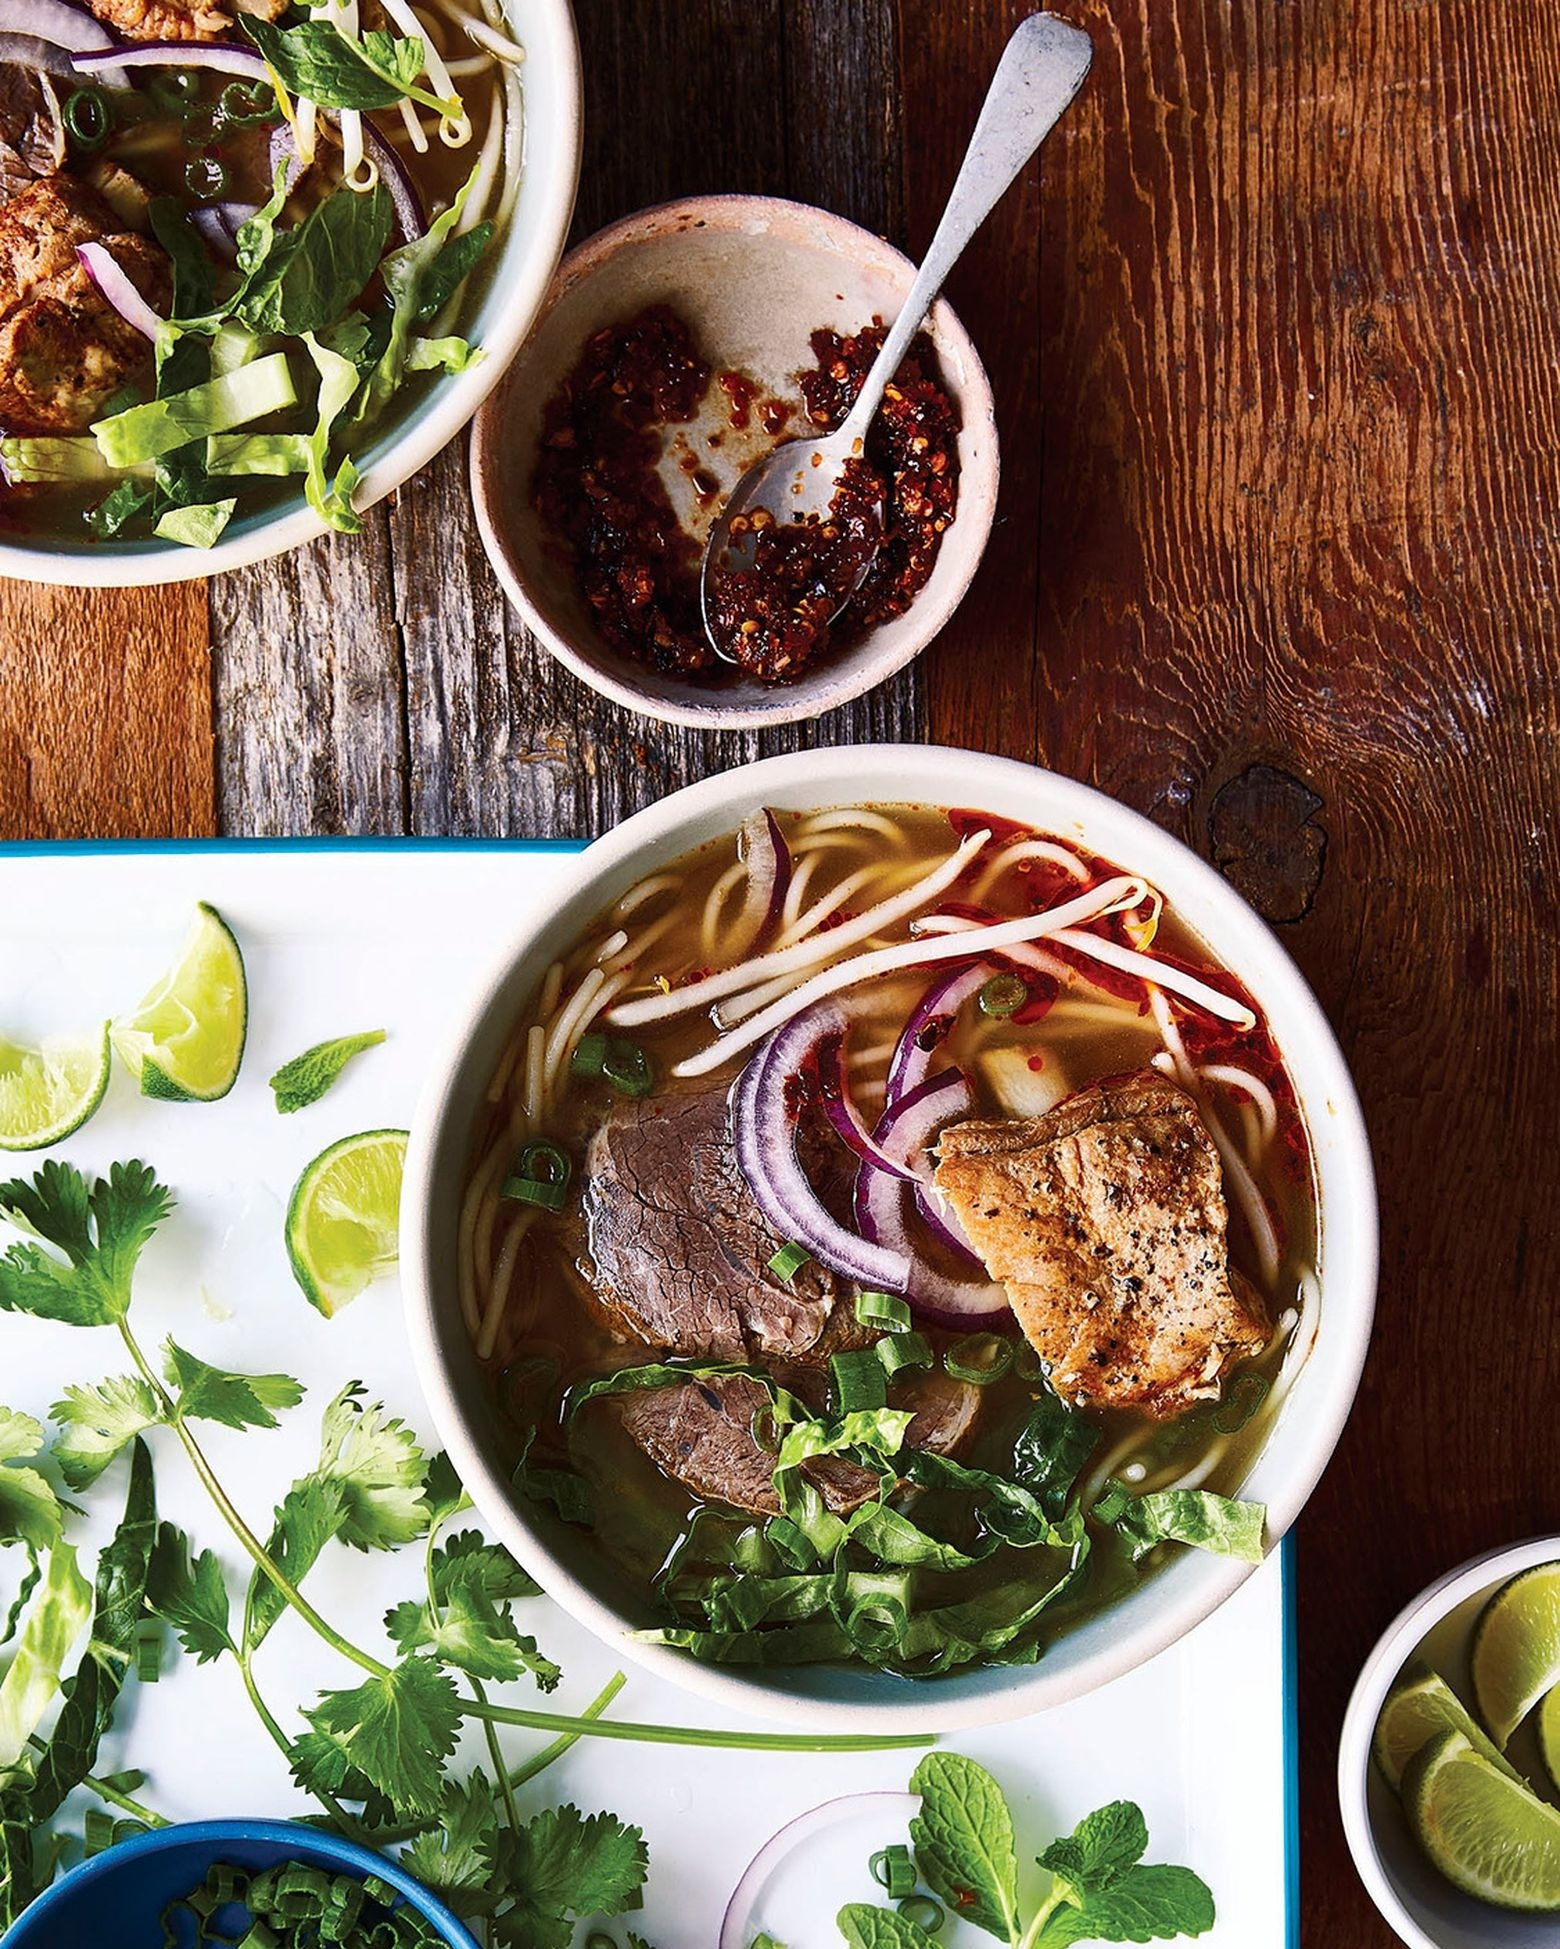 Andrea Nguyen's Latest Cookbook Is a Seminal Work for Vietnamese Cuisine - SAVEUR